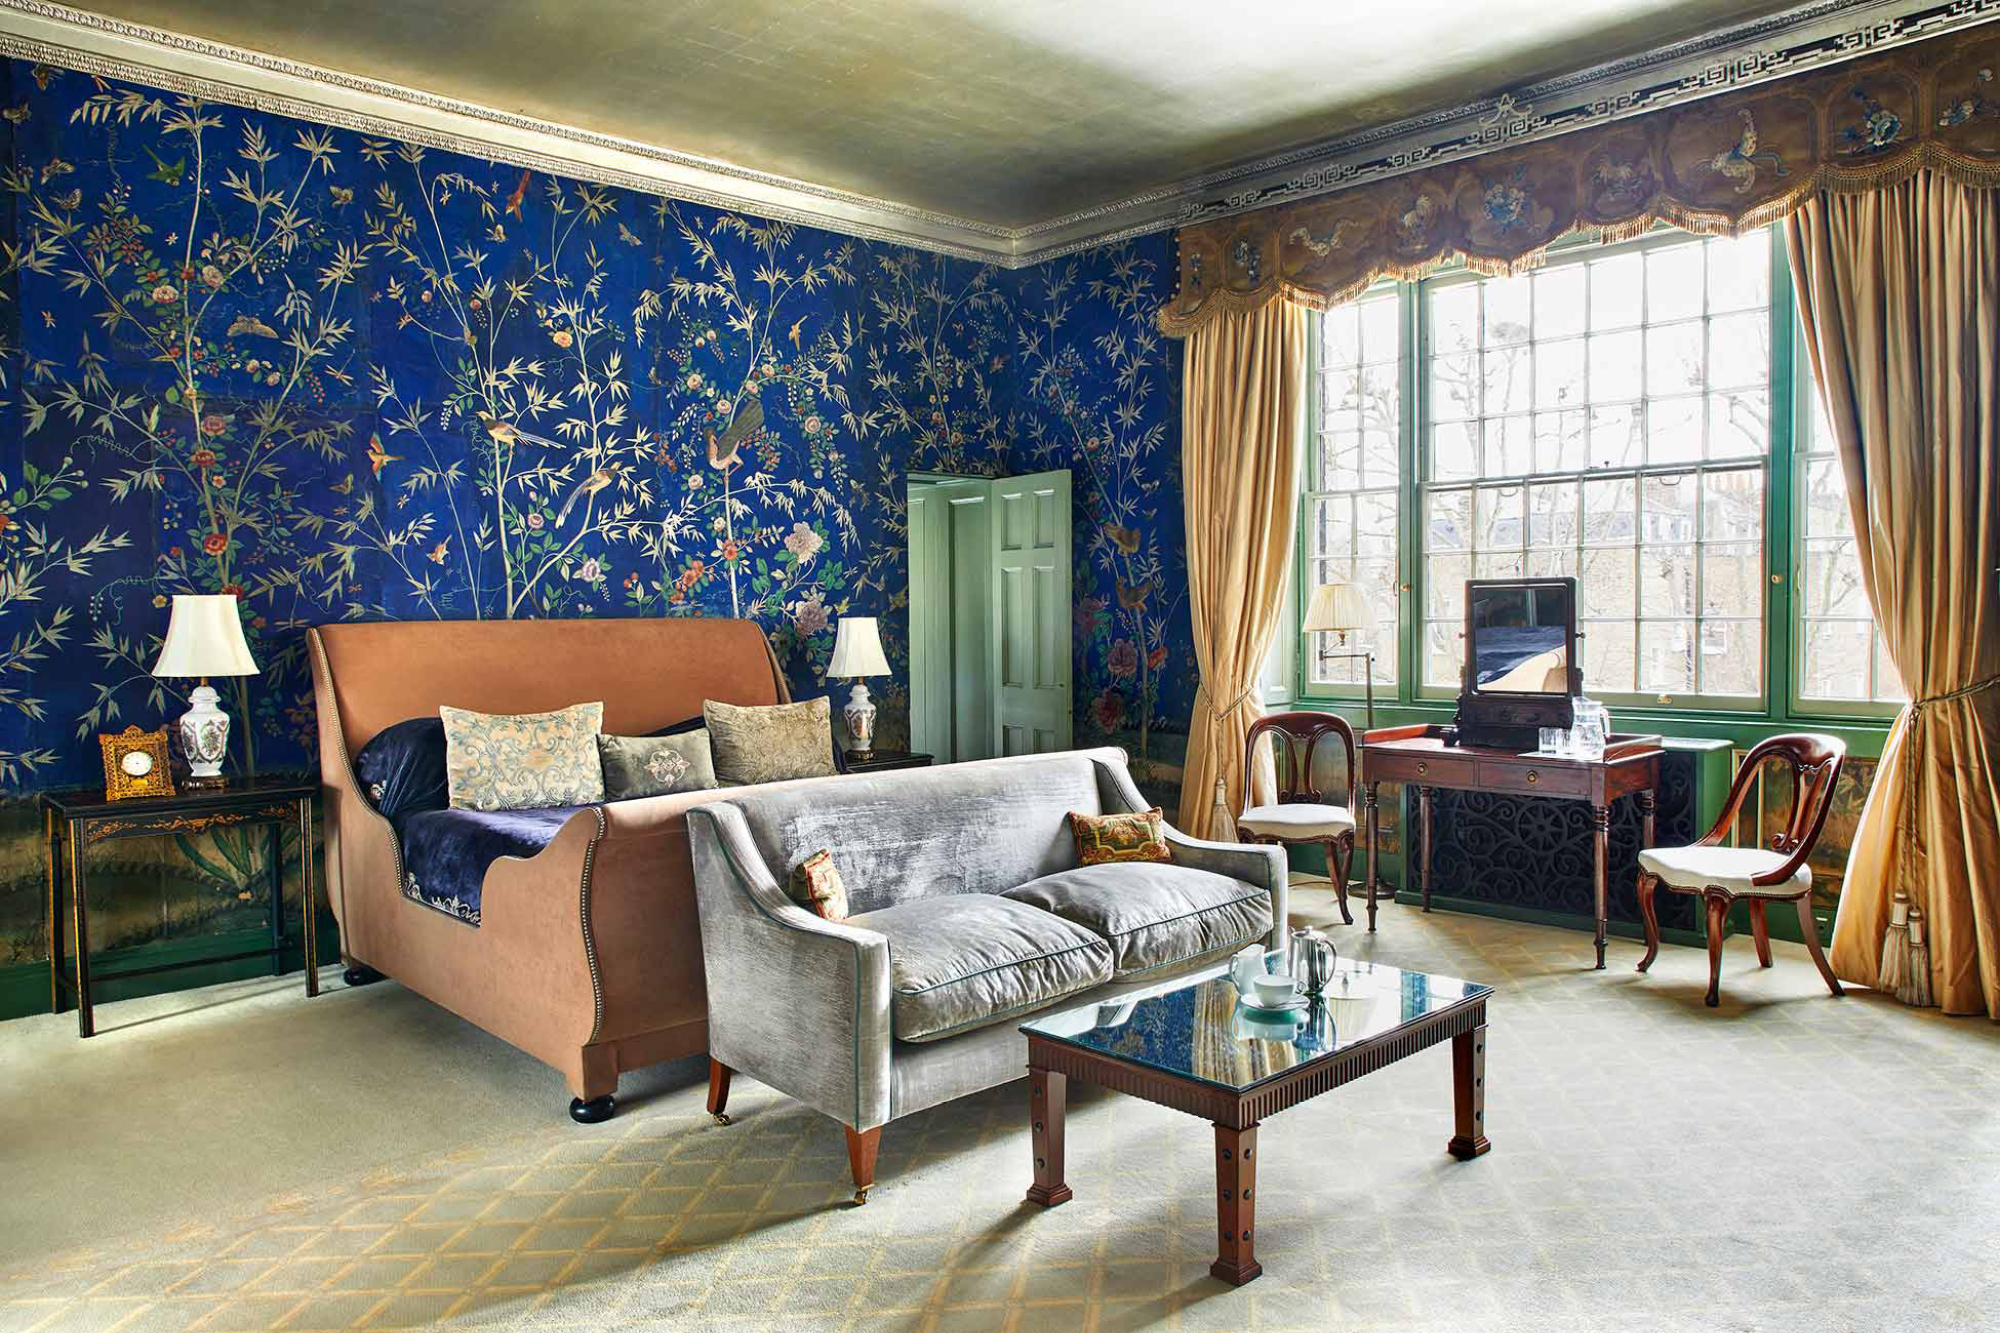 The ornate hand-painting wallpaper of the Patricia Portman room makes it one of the most covetable bedrooms for a Home House staycation